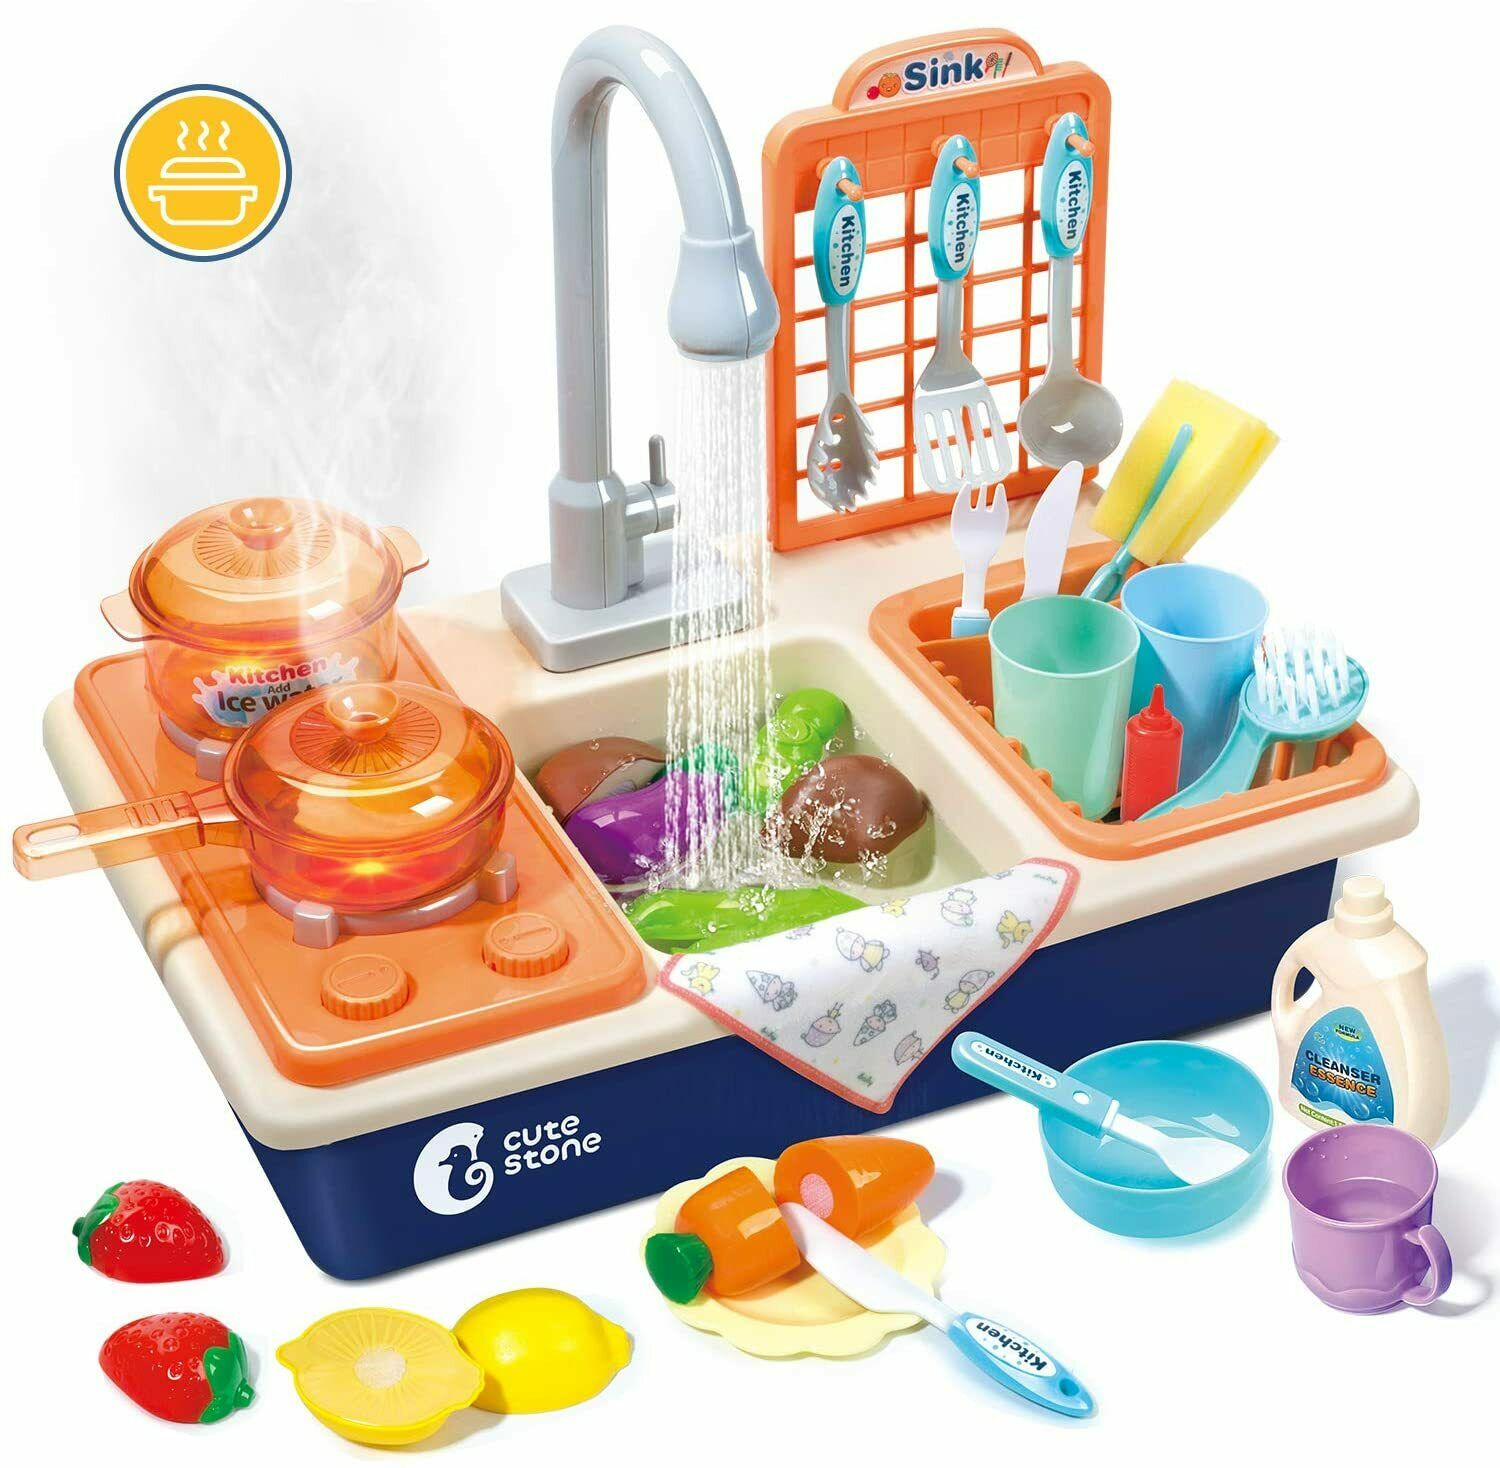 Kids Simulation Kitchen Toys Electronic Cooker Playset Cooking Pretend Role Toy For Sale Online Ebay